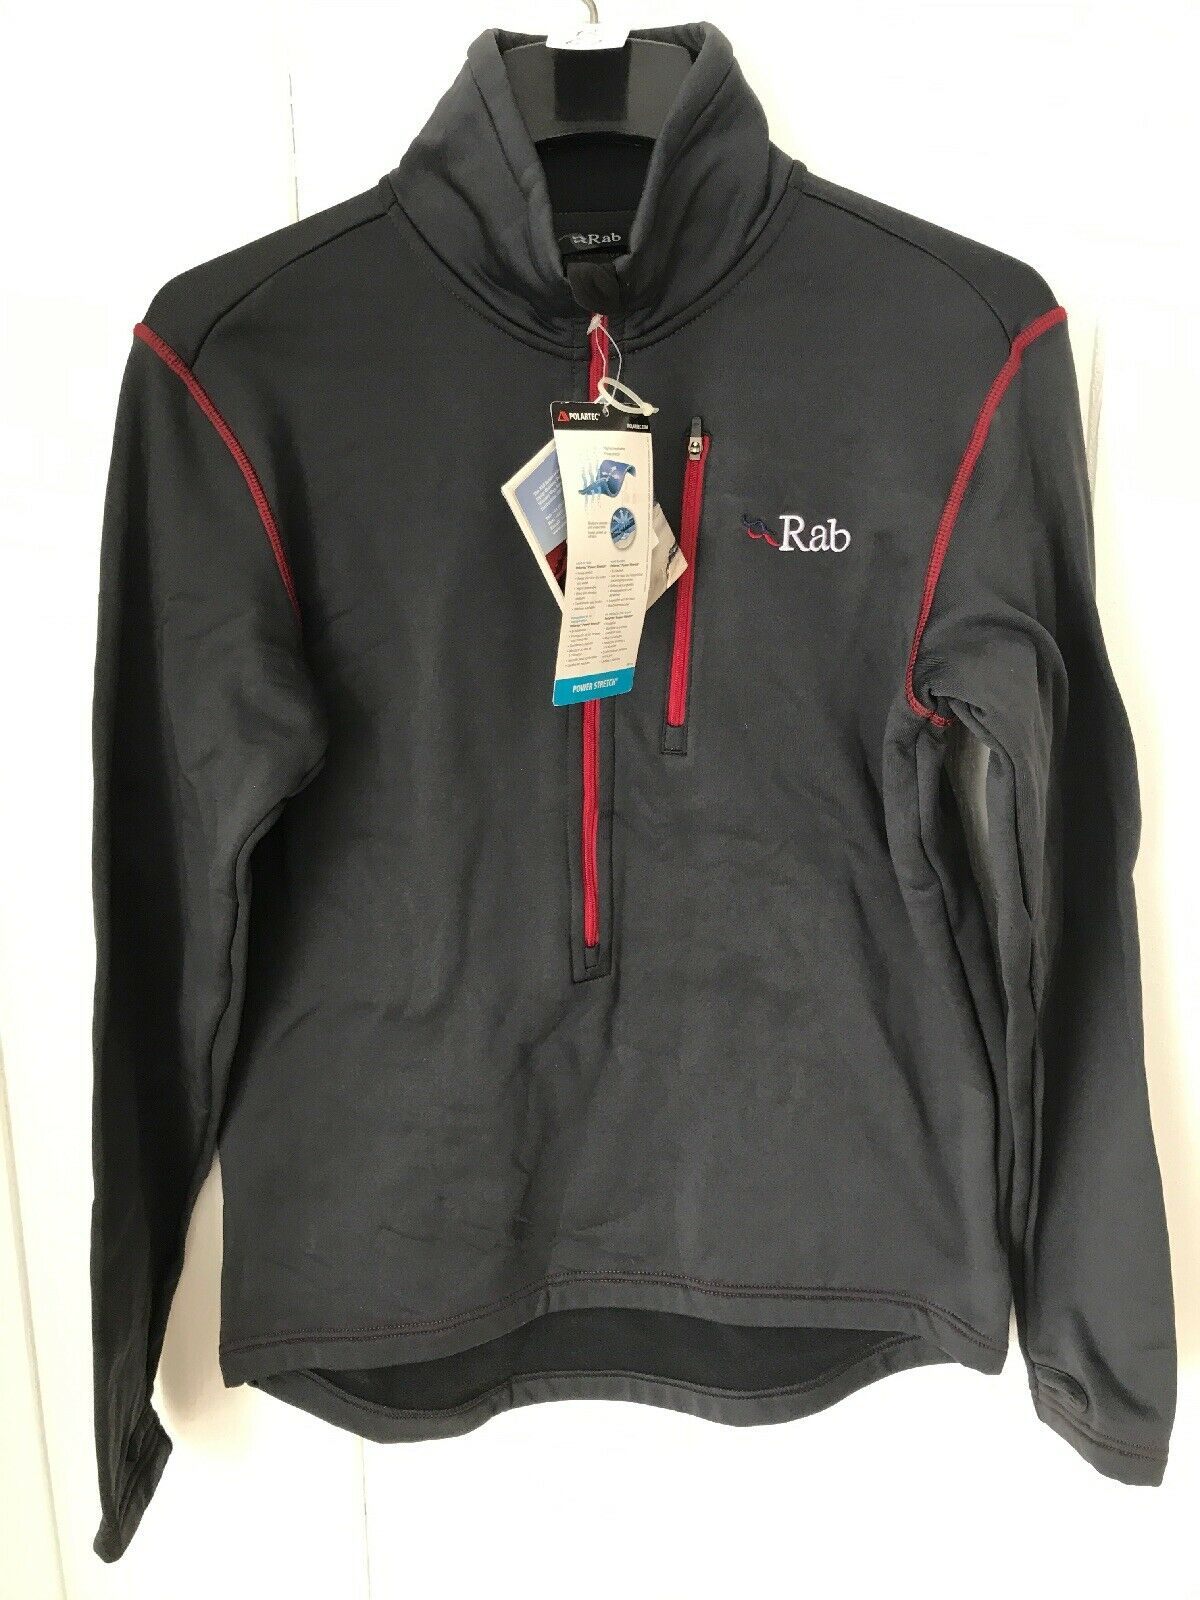 Rab Power Stretch Zip Top   high-quality merchandise and convenient, honest service